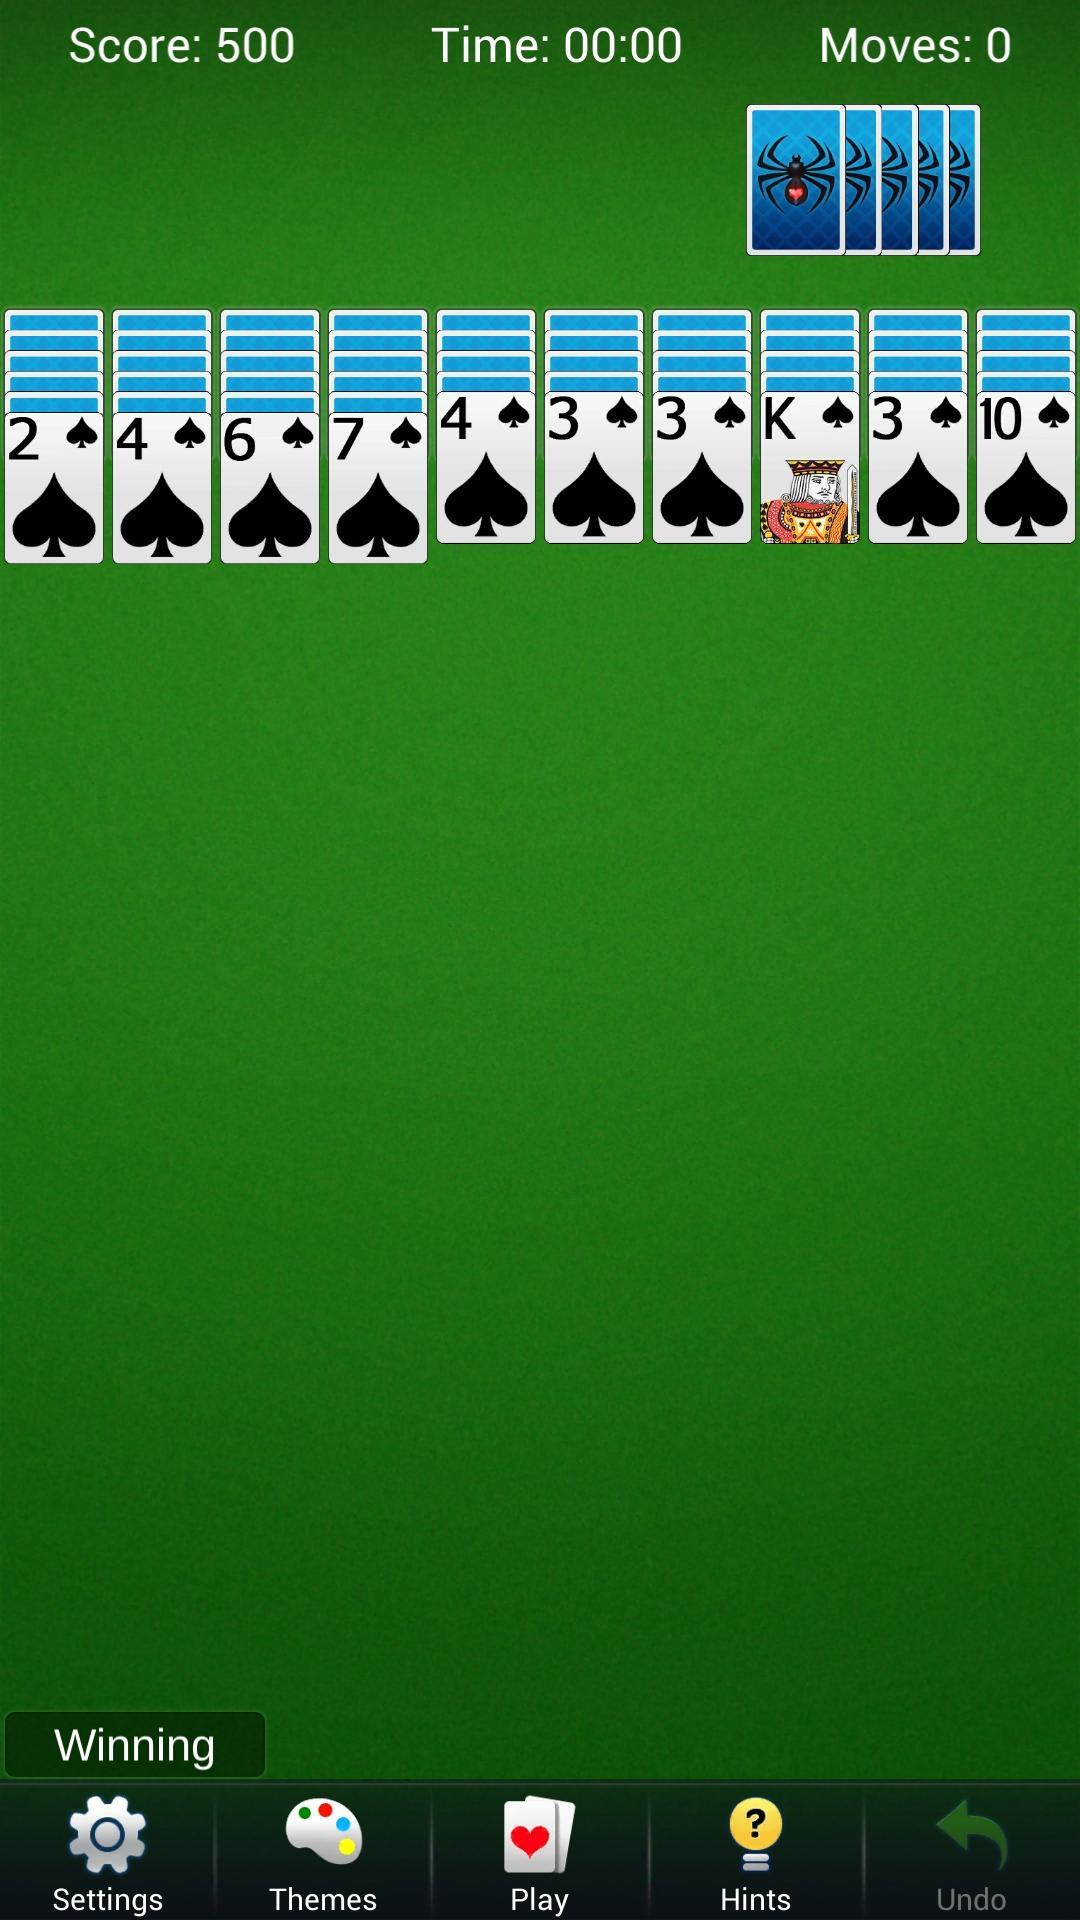 Spider Solitaire - Best Classic Card Games 1.8.0.20210225 Screenshot 14